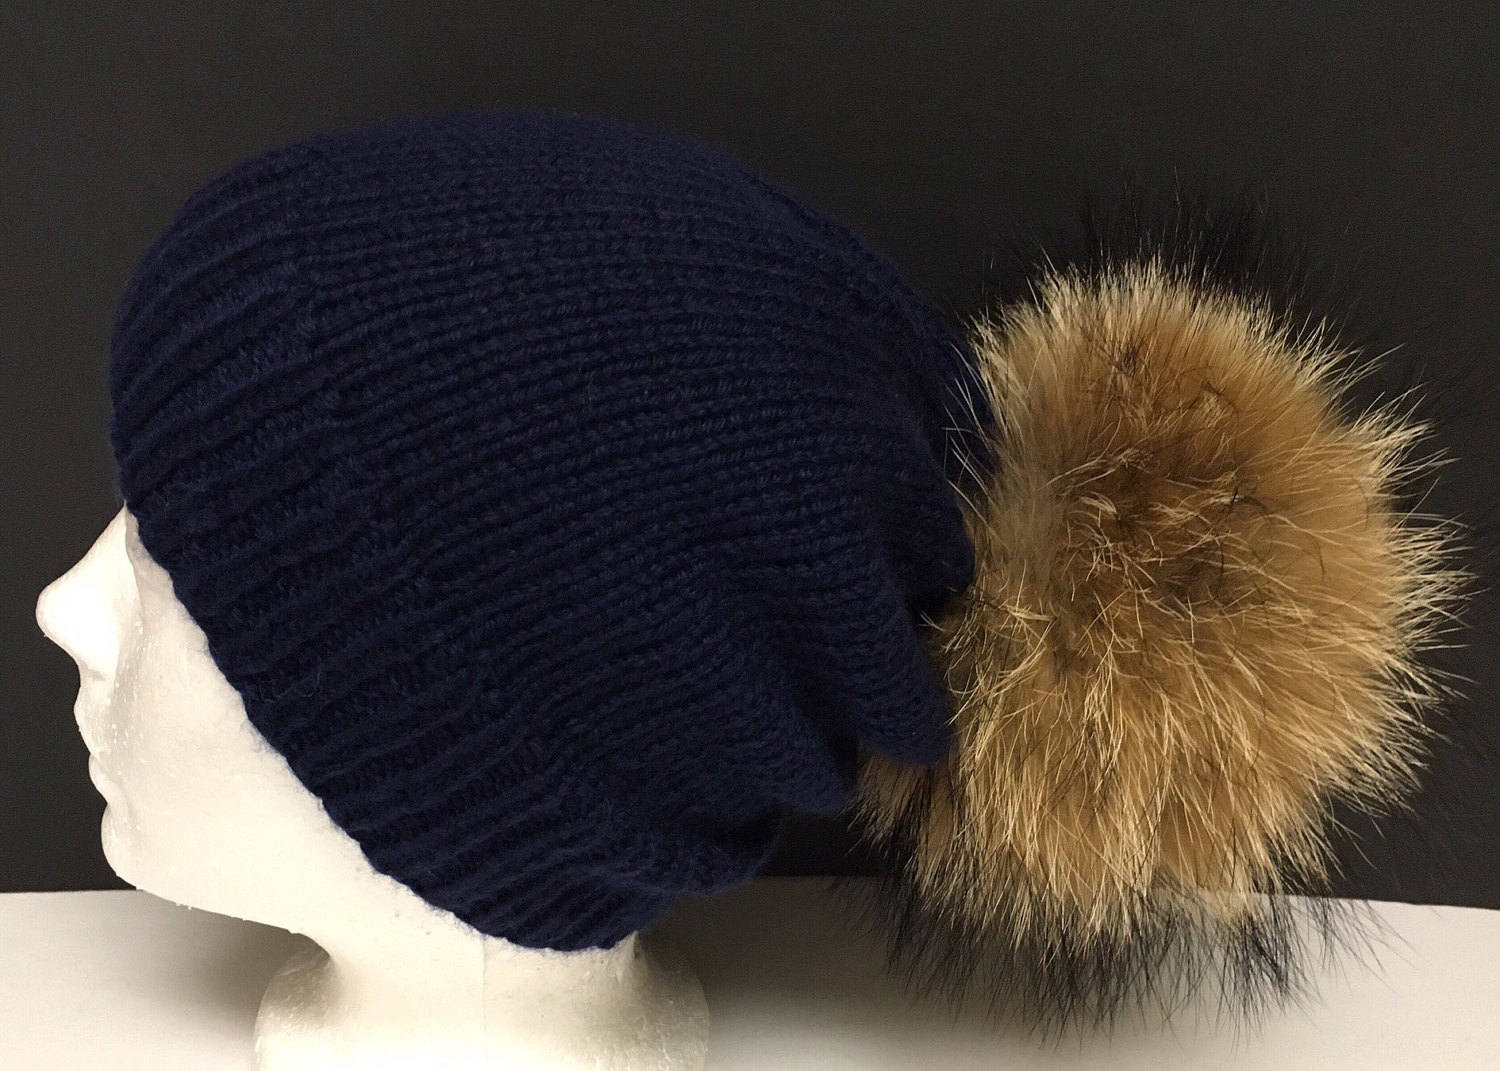 6aab2d72e 100% Cashmere Navy Blue Slouchy Beanie Hat Handmade - Natural Brown Raccoon  Fur Pom Pom - Super Soft - Brand New